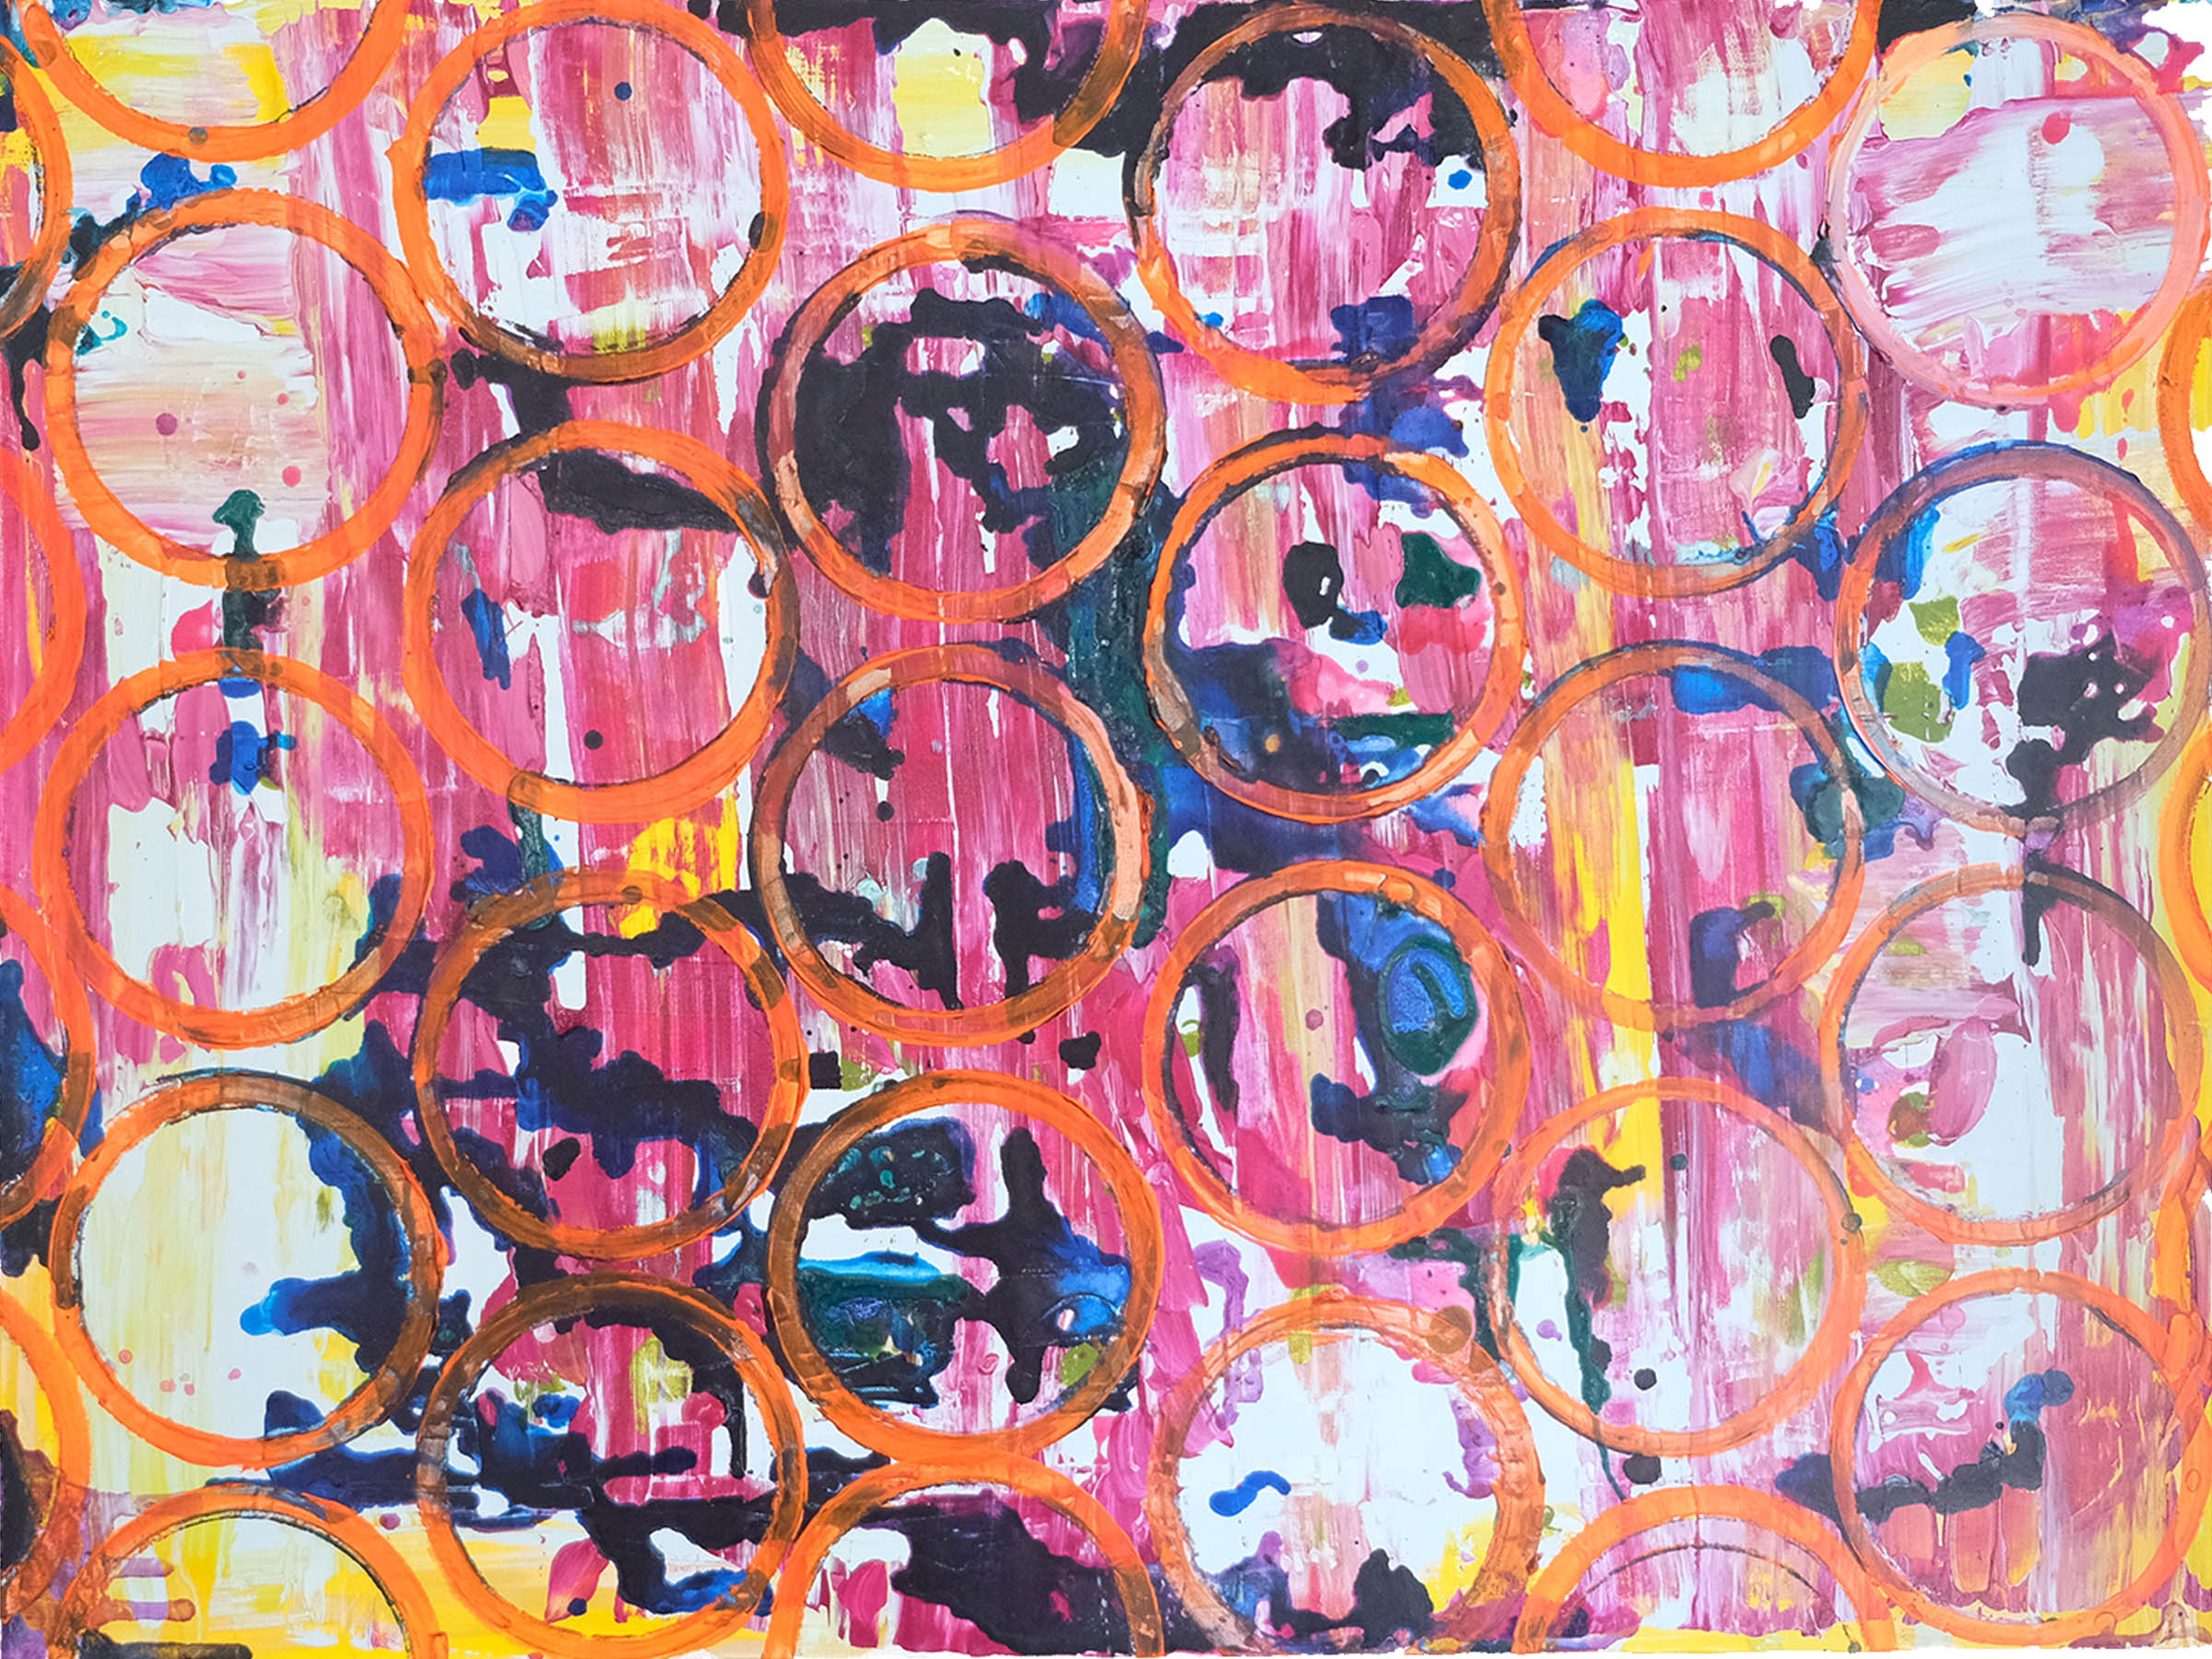 Untitled pink orange and blue painting with circles and drips by Caitlin Wheeler Art June 2018